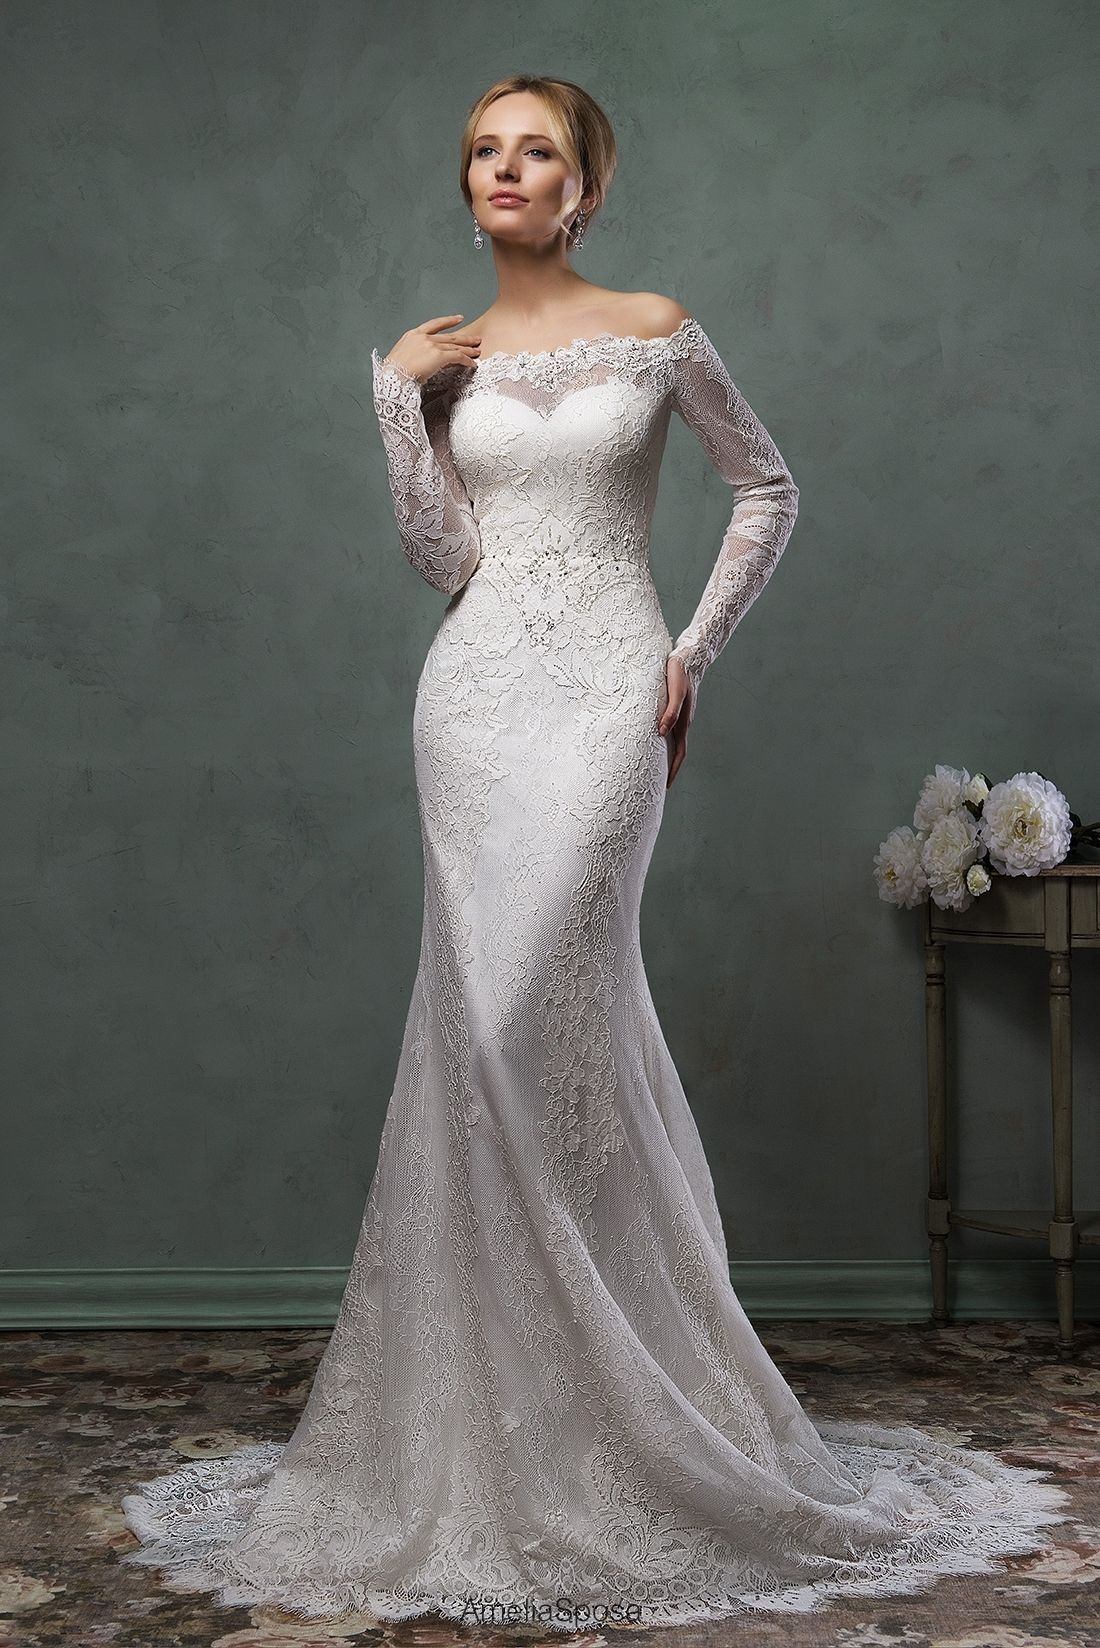 Wedding dress ofelia amelia sposa wedding dresses